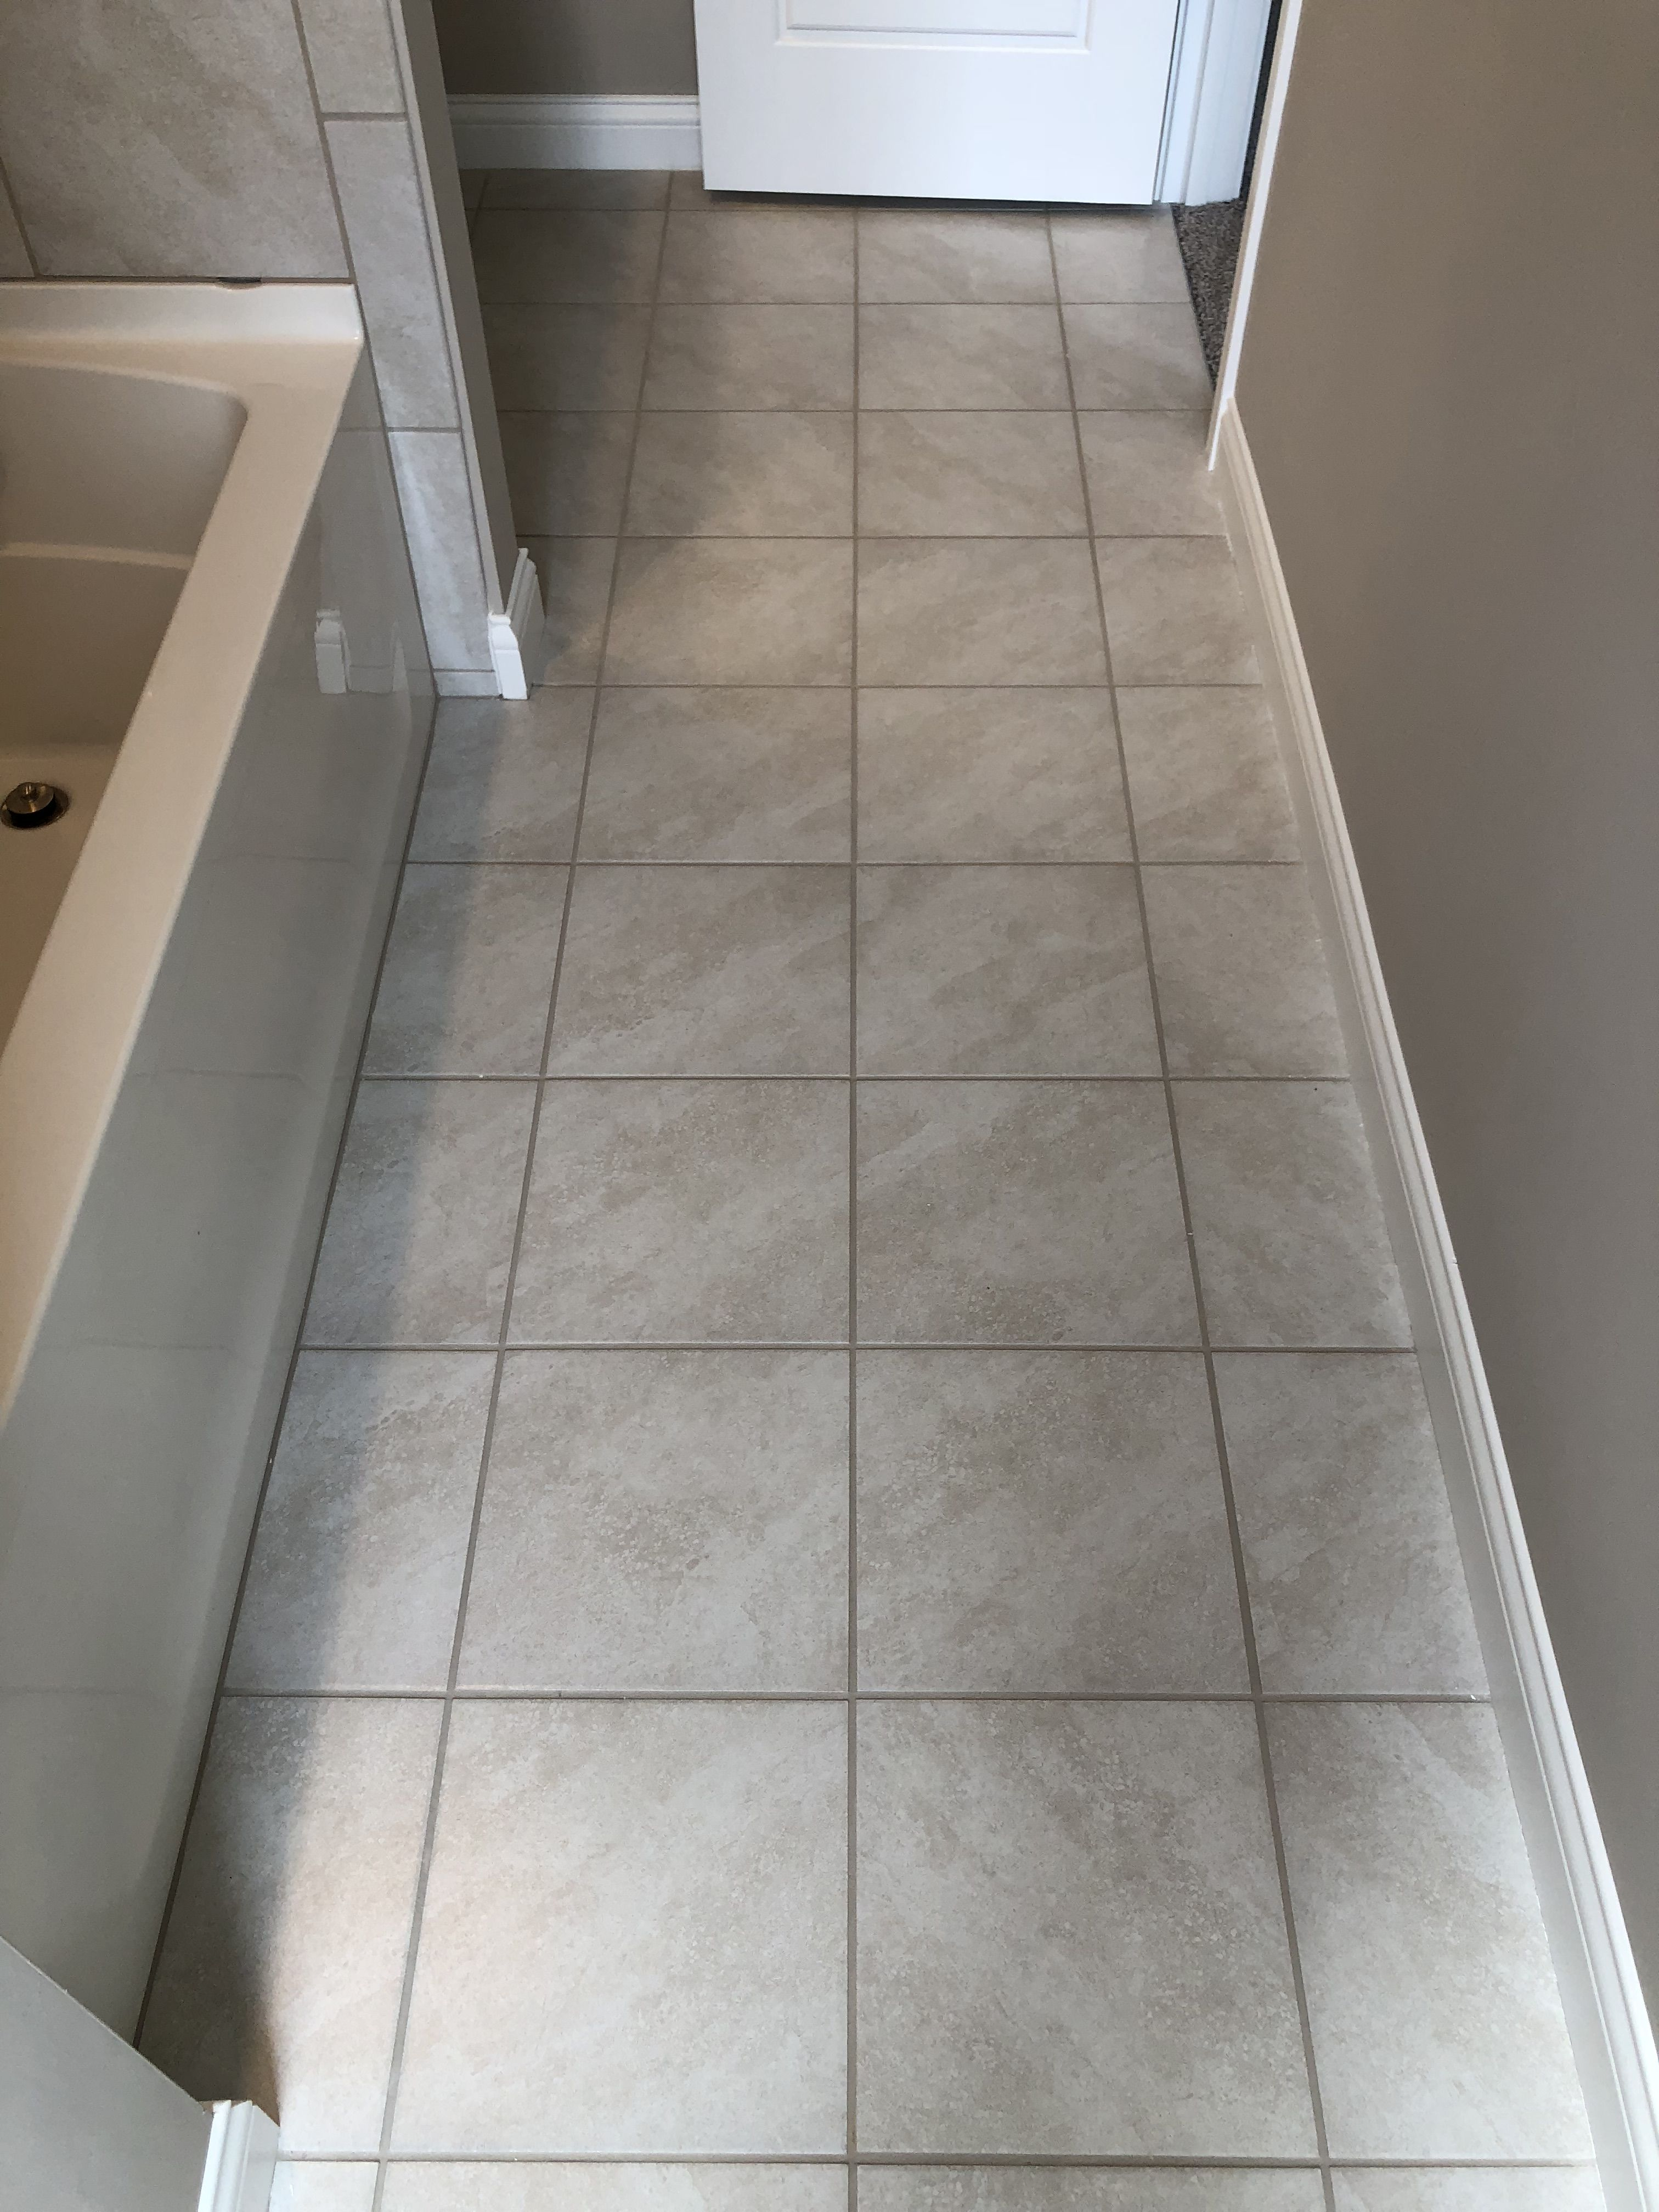 Cannes 12x12 Candido Floor Tile House Bathroom Flooring Tile Floor